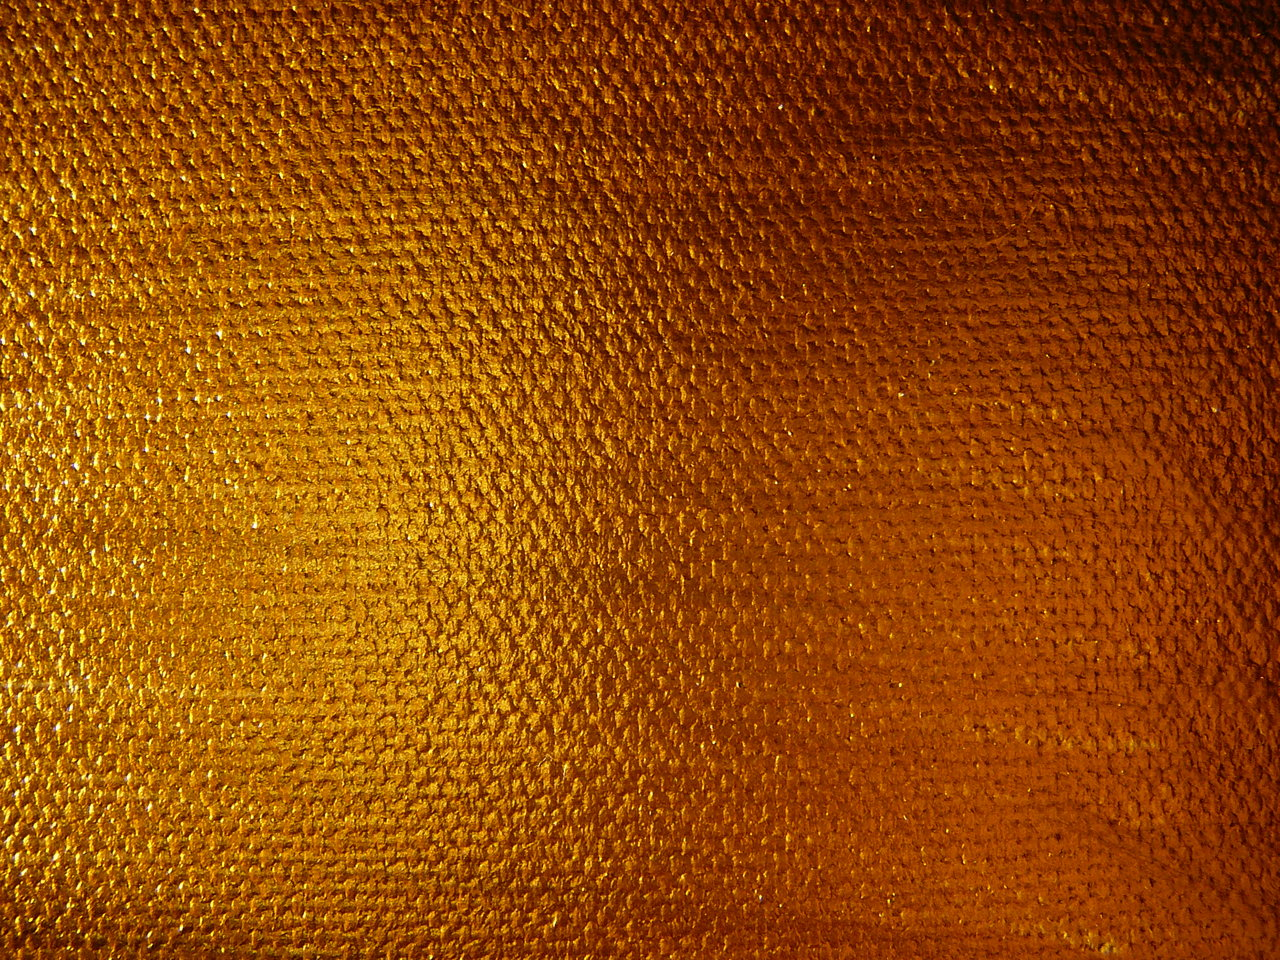 Gold Paint on Canvas Texture by Enchantedgal Stock 1280x960